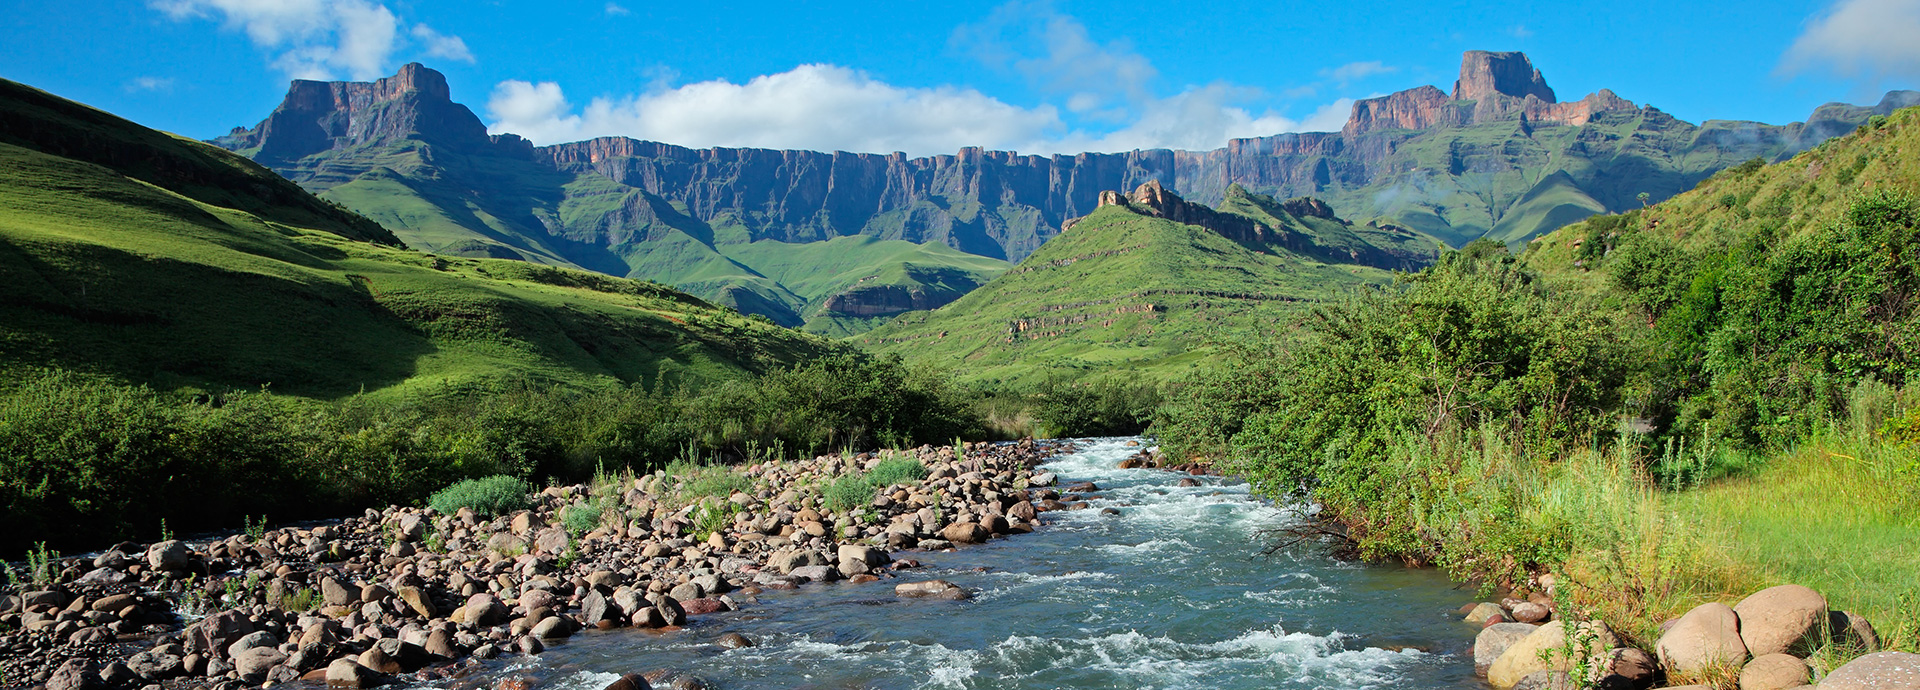 south-africa-drakensberg-mountains-slide06